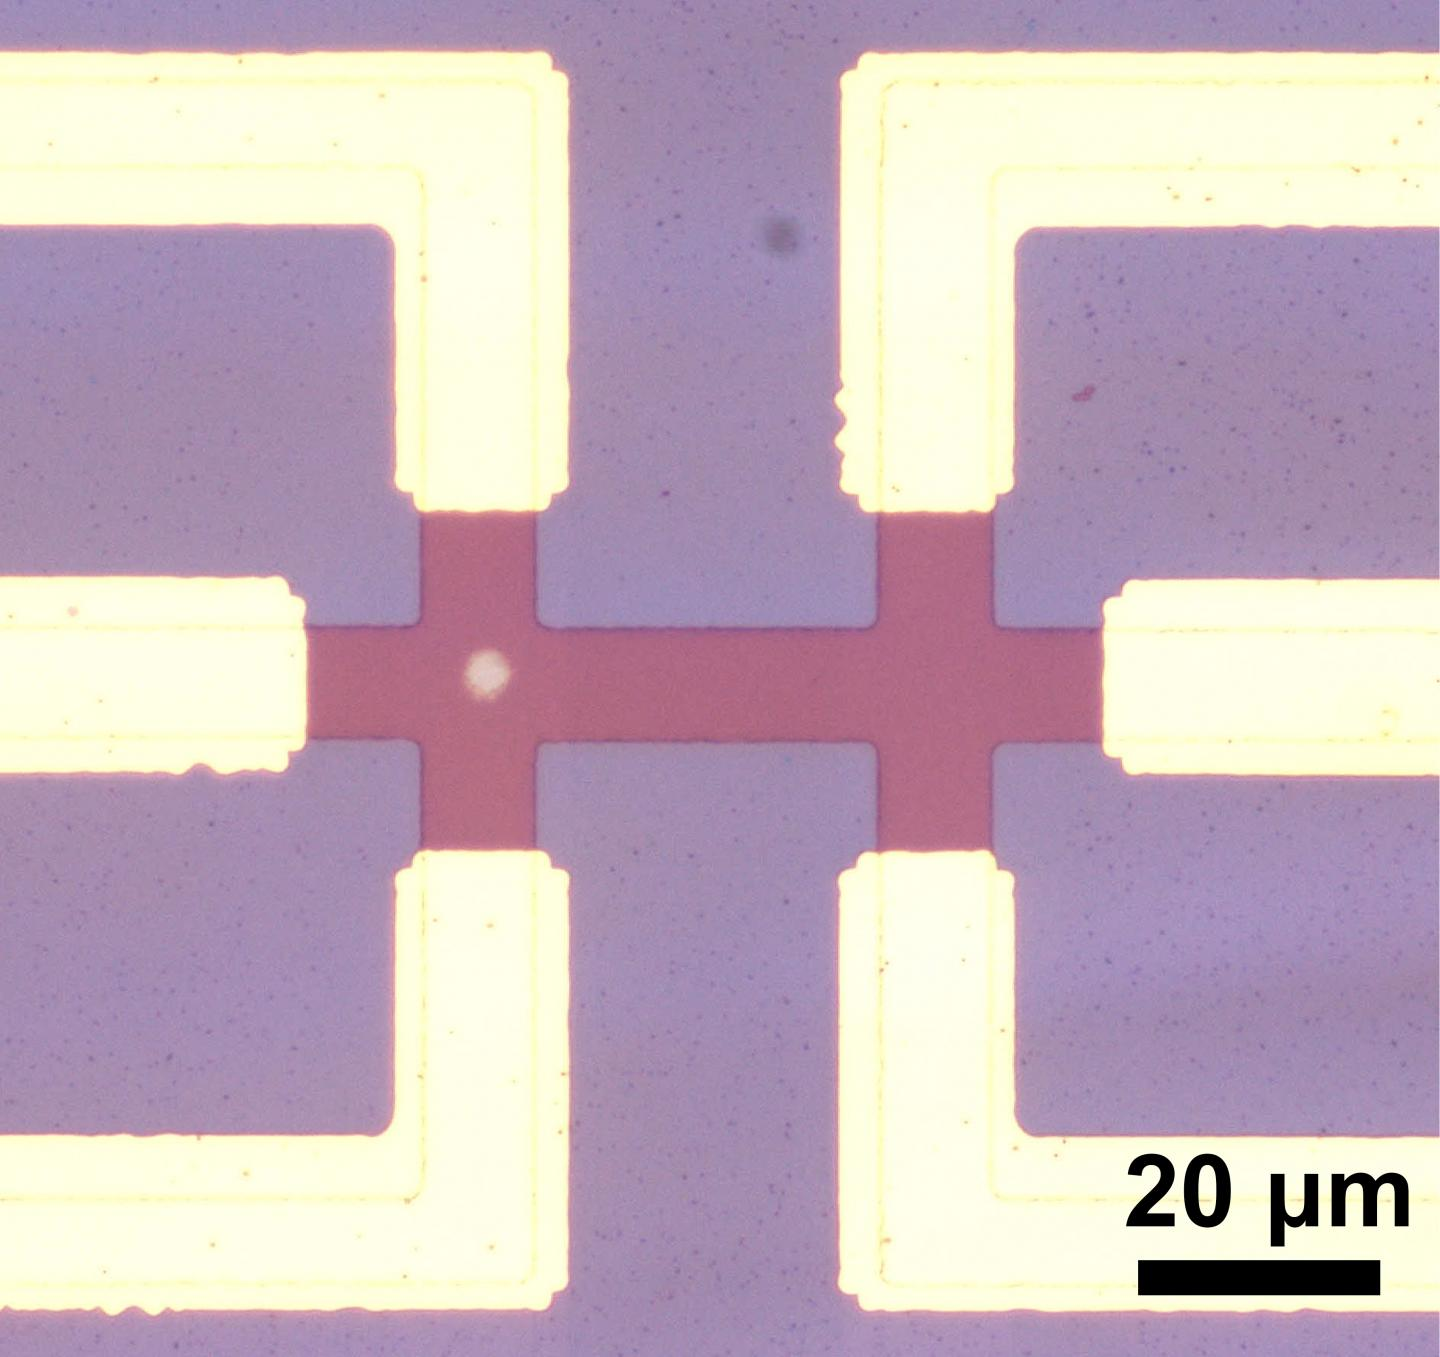 Microscope Image Without Numbers and Axis